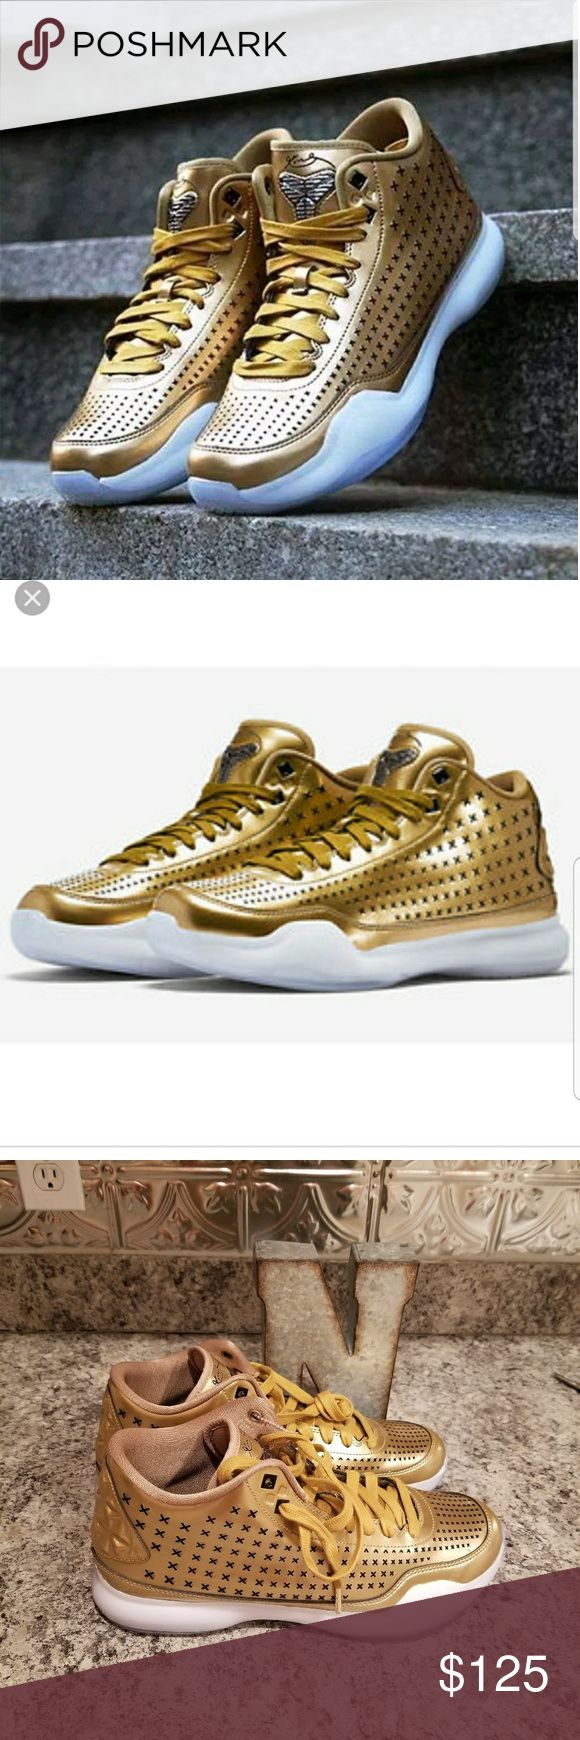 """NWOB! Mens Nike Metallic Gold Kobe Bryant X Mid BRAND NEW METALLIC GOLD KOBE X MID.   Sizes 10, 10.5, 11  Msrp $225   What's there to say about these Kobe X Mid amazing colorway harder & harder to find. Perfect shoe for the collection or to wear when you wana stand out from the crowd. No box.  This """"Liquid Gold"""" version is sure to grab anyones attention as the shoe is fully dressed in a Metallic Gold and Black color scheme. The entire upper is done in its x-perforated pattern that is dipped…"""